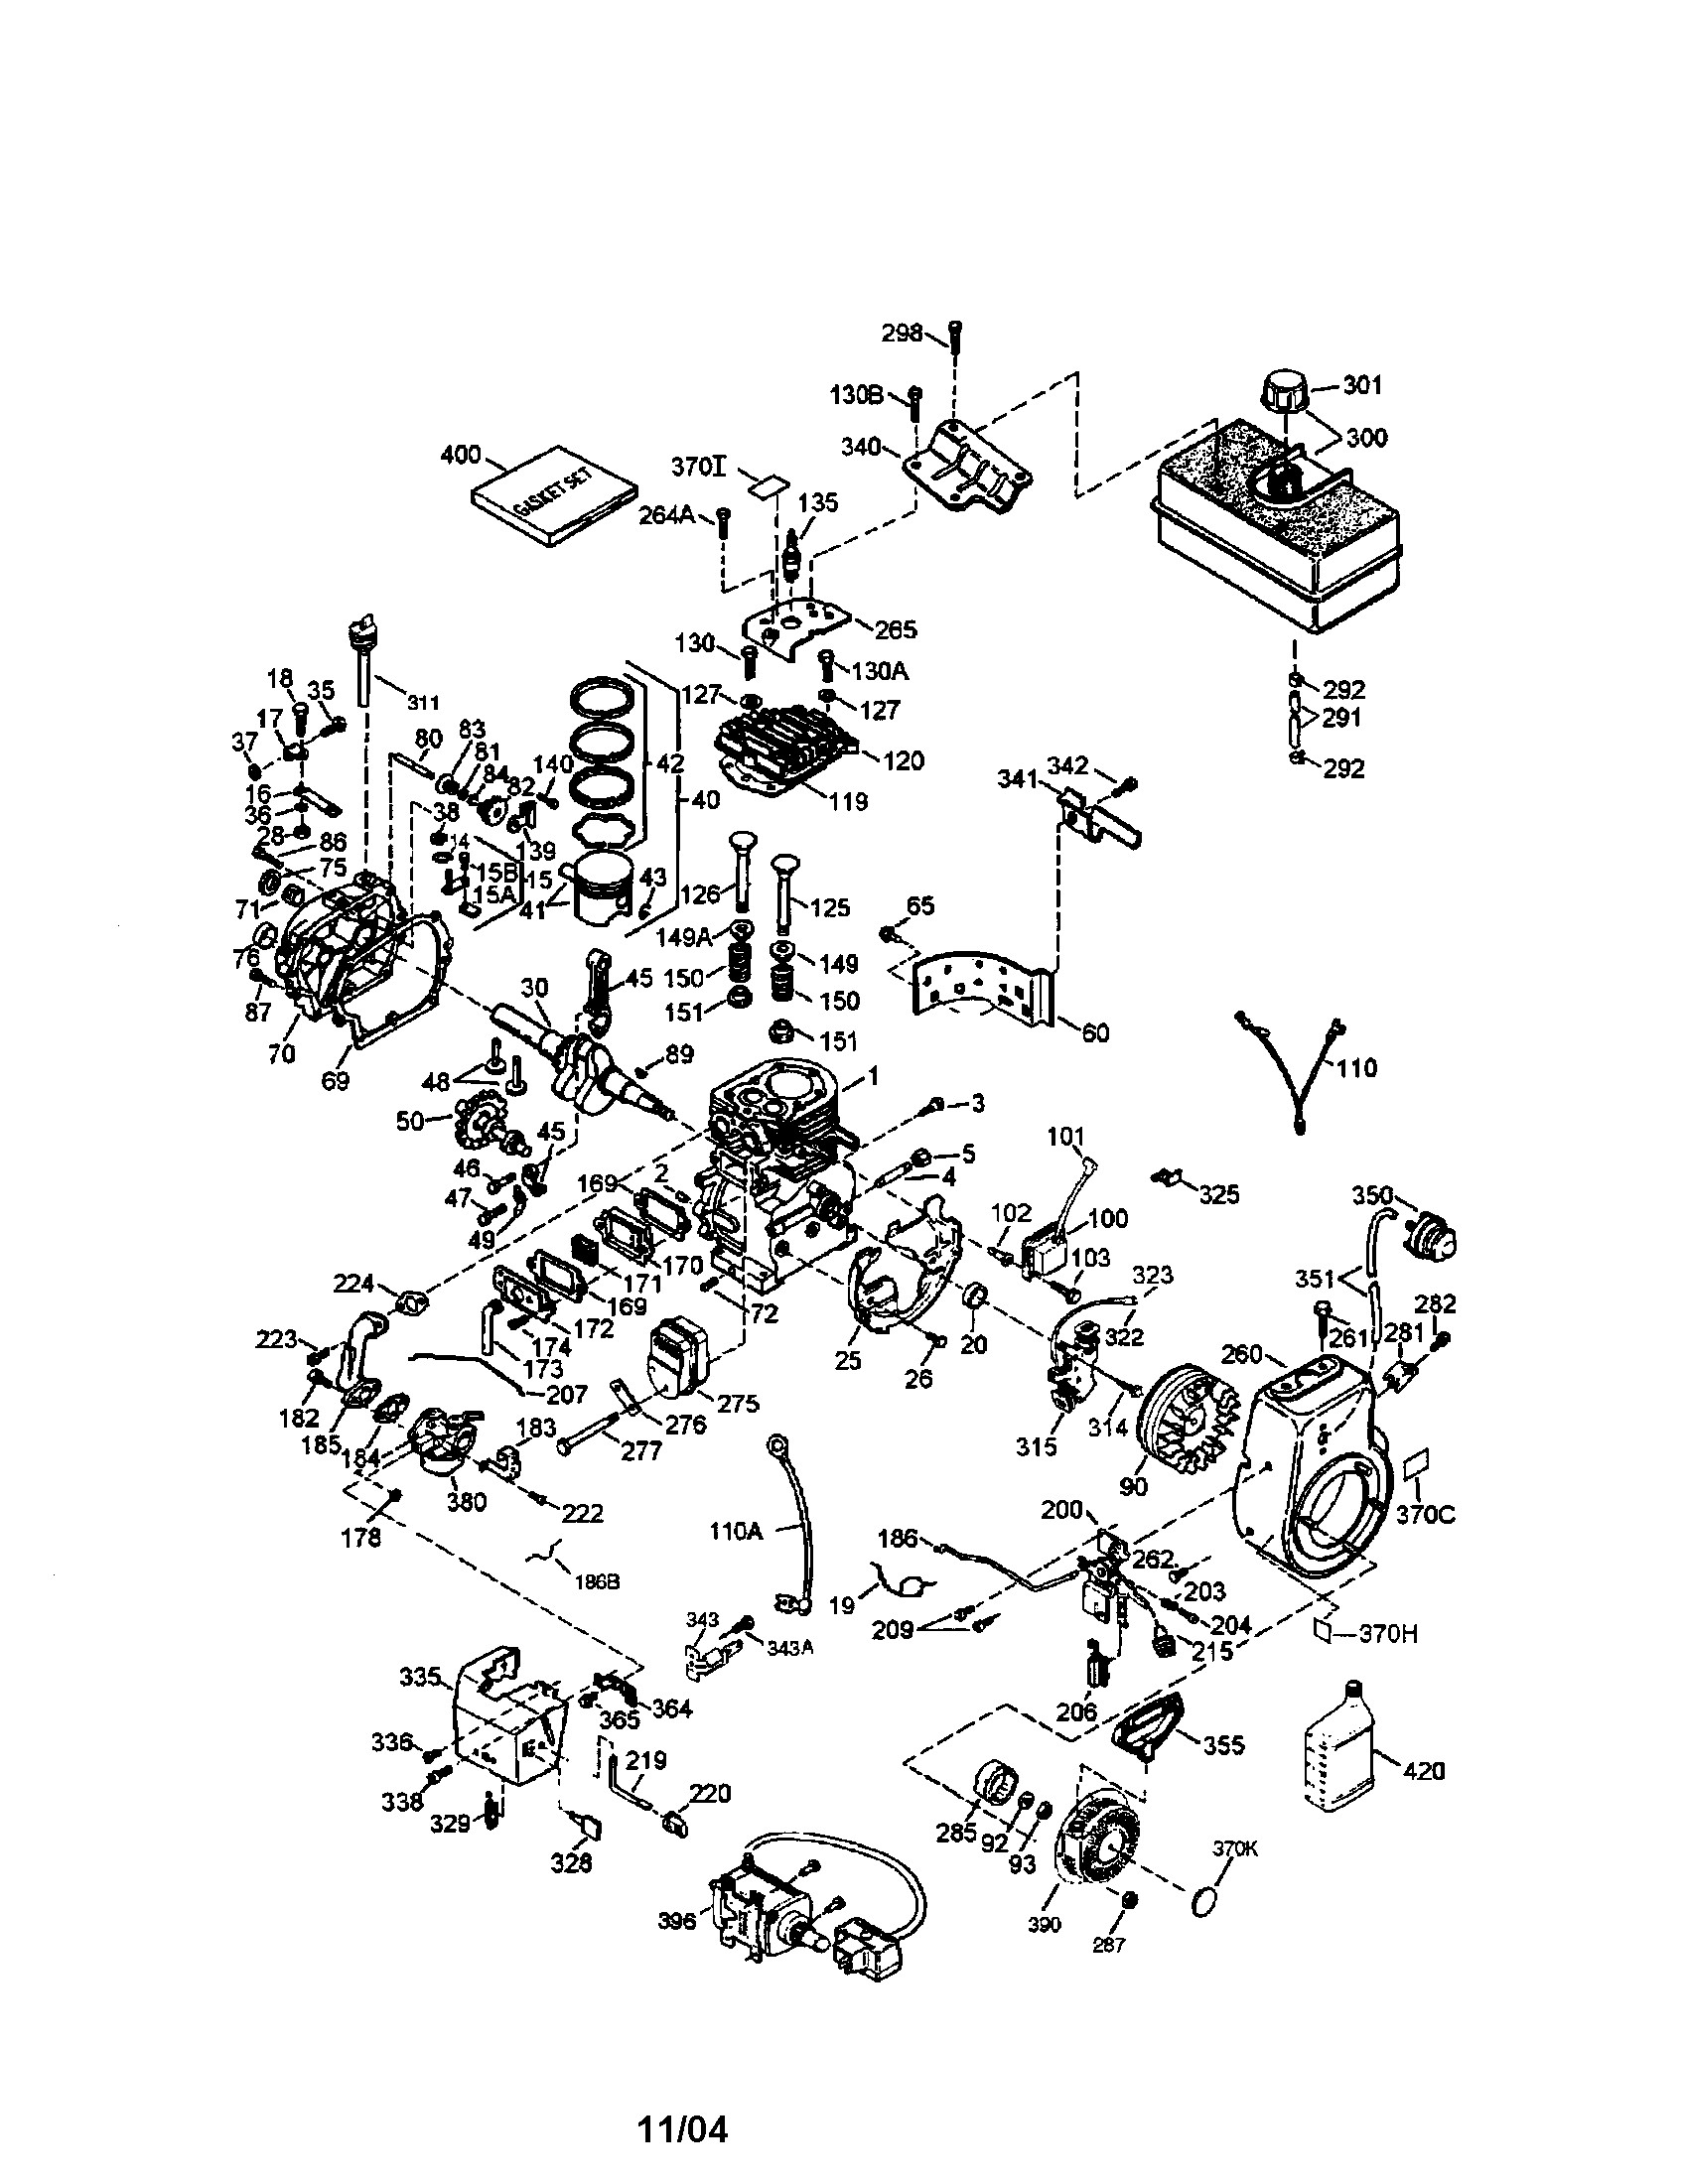 Carburetor Diagram for Tecumseh Engine Tecumseh Engine Carburetor Diagram Tecumseh Engine Parts Of Carburetor Diagram for Tecumseh Engine